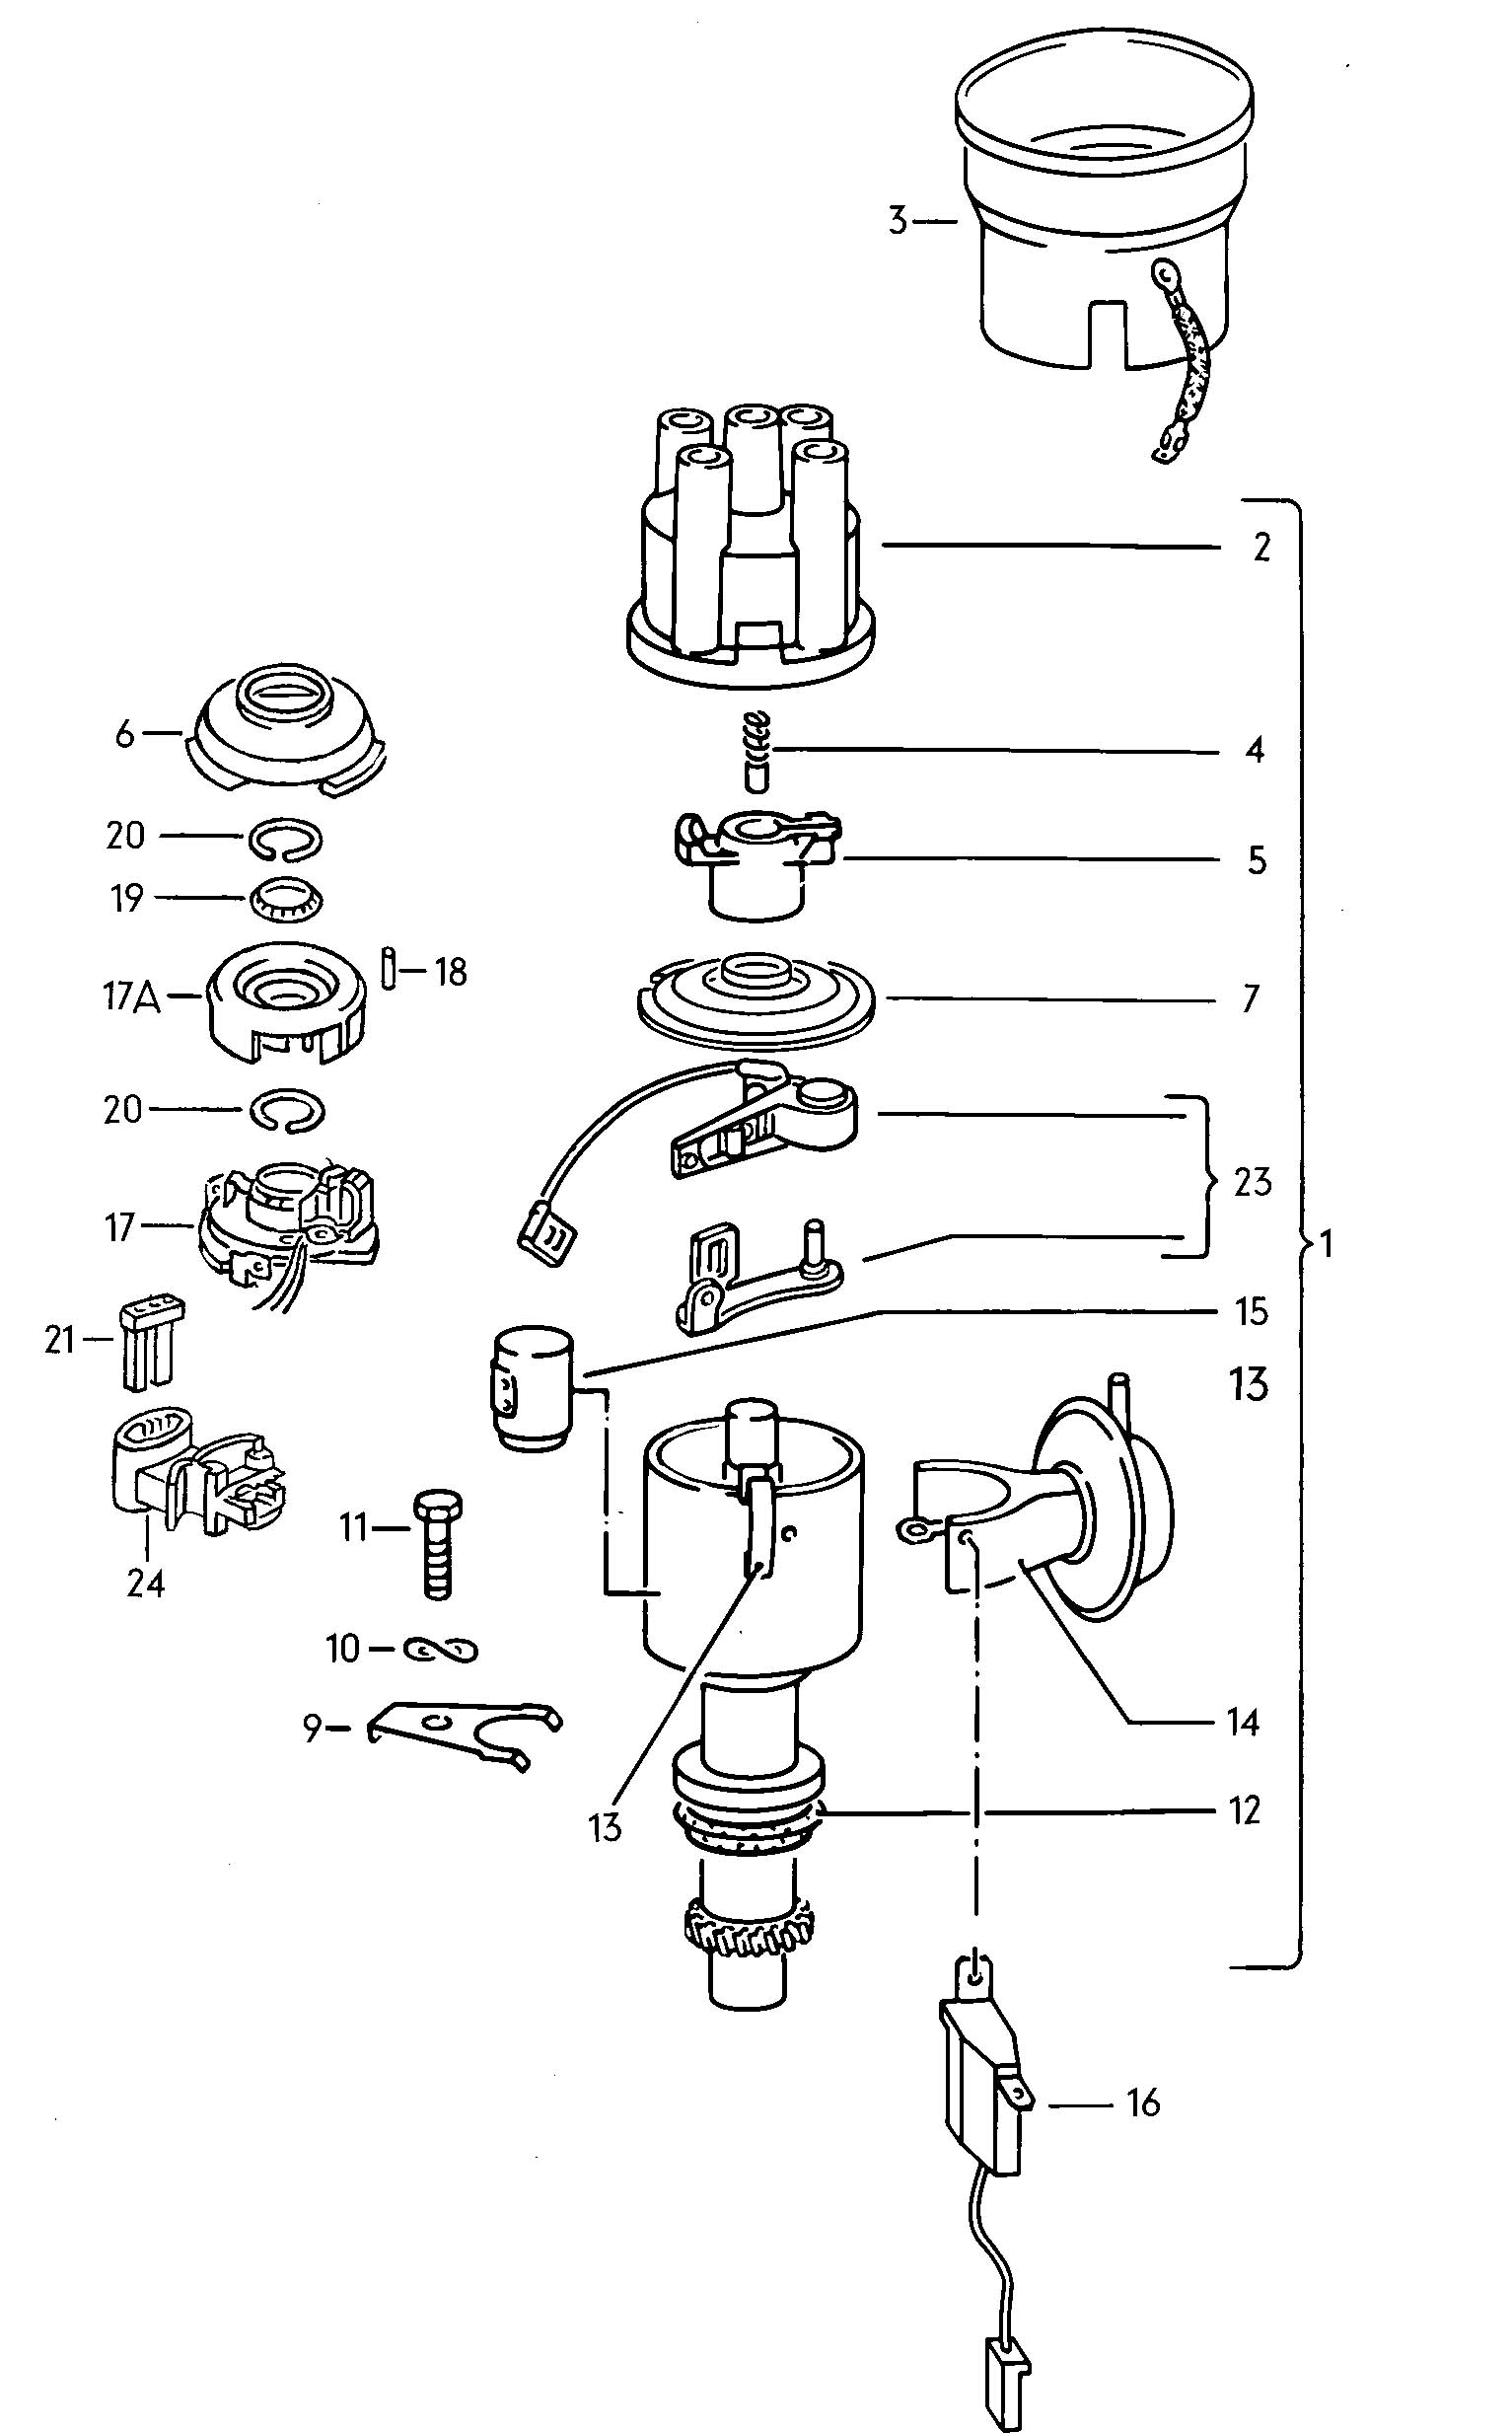 Volkswagen Jetta Hall Sender With Mounting For Distributor